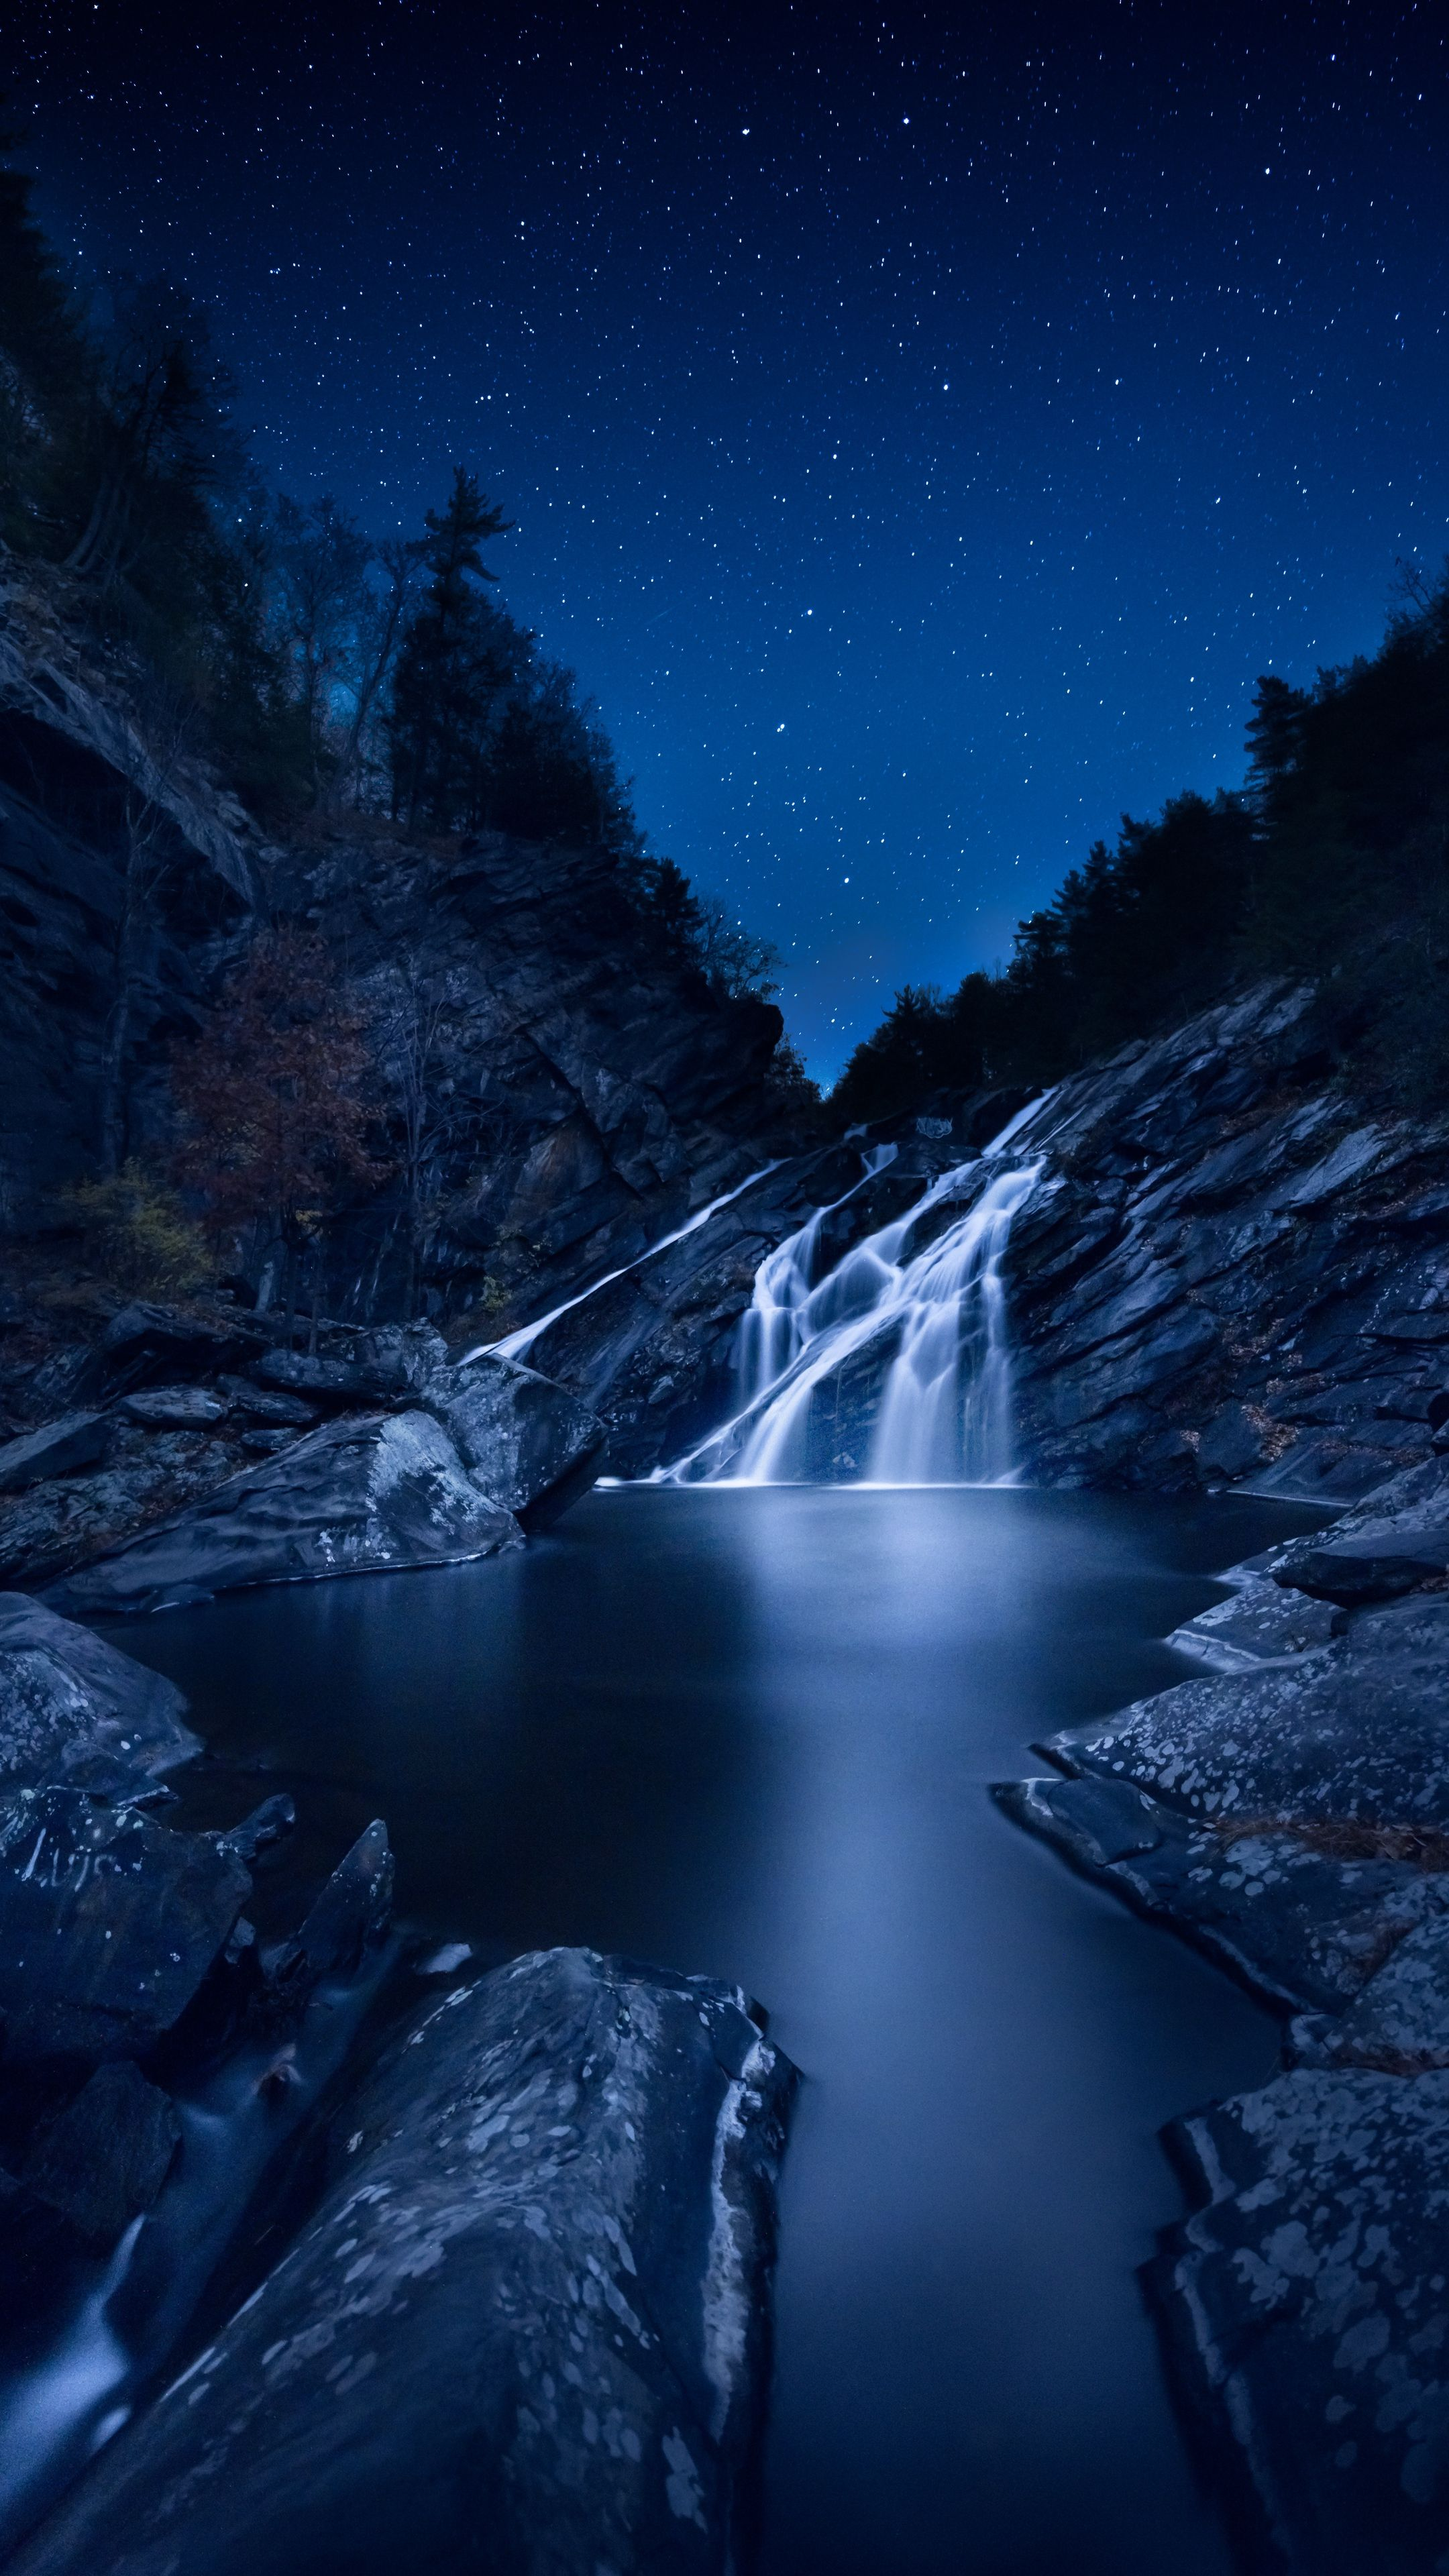 Nature waterfall starrysky stones wallpapers hd 4k